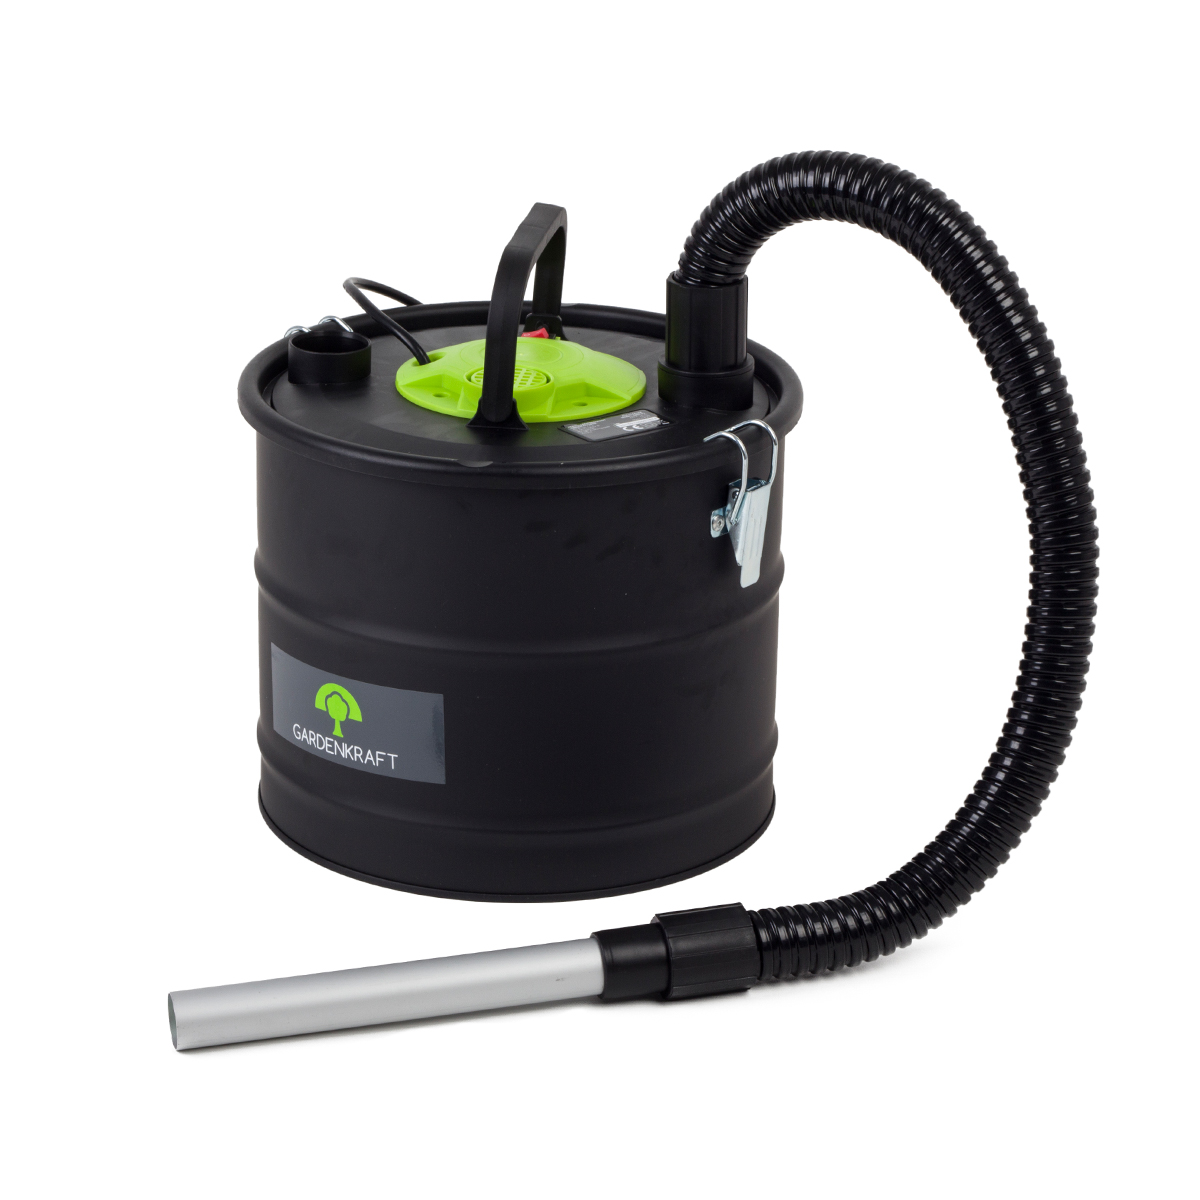 Ash vacuum Chimney with Motor 1200W HEPA Filter Cleaner ...